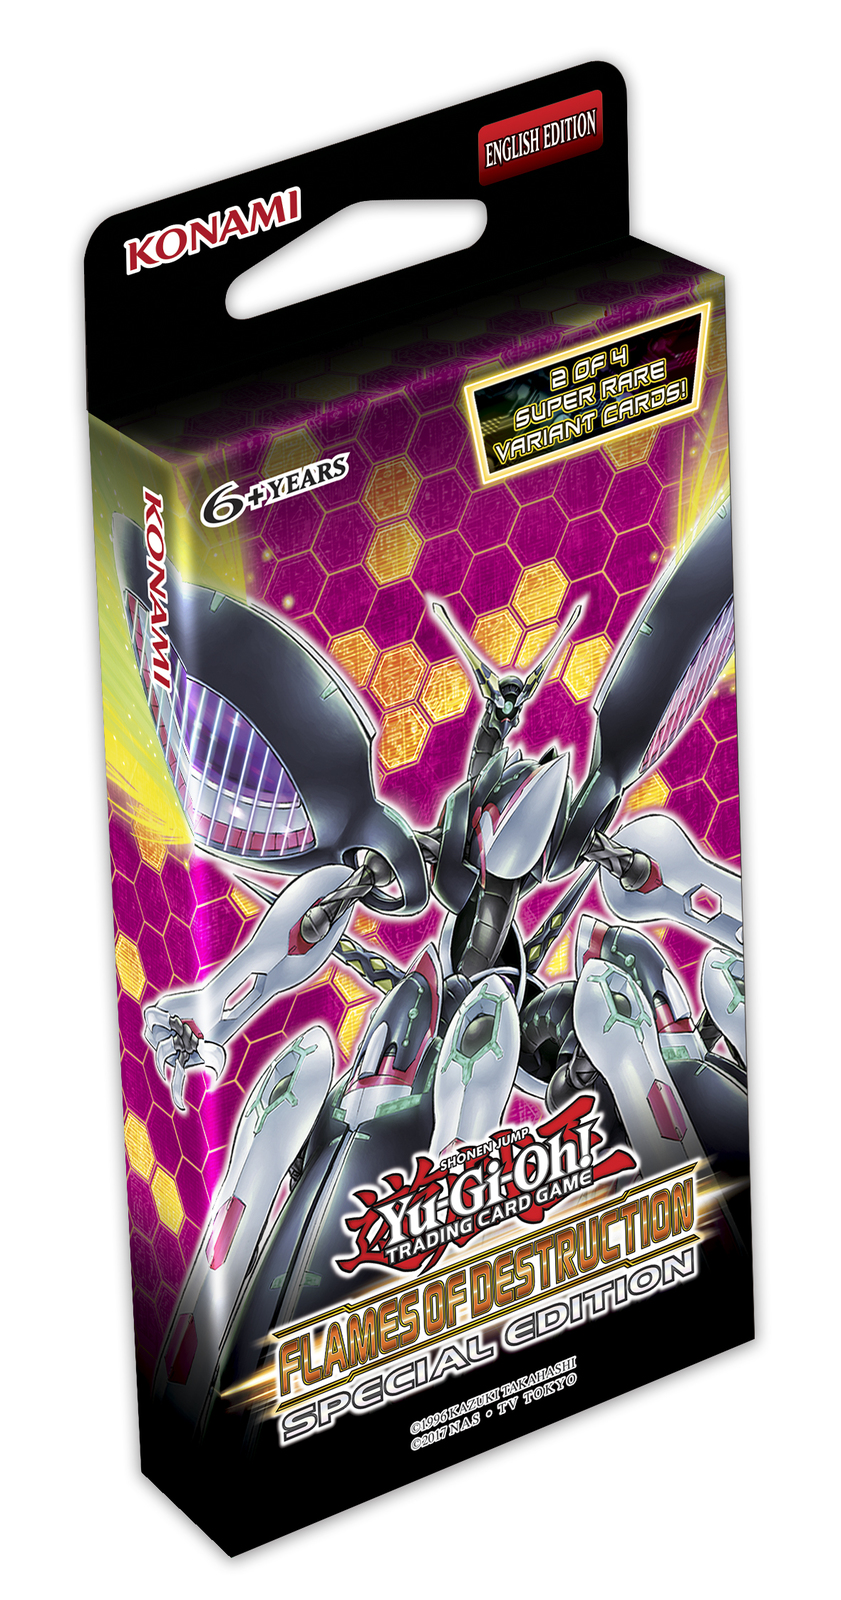 Yu-Gi-Oh! Flames of Destruction Special Edition image